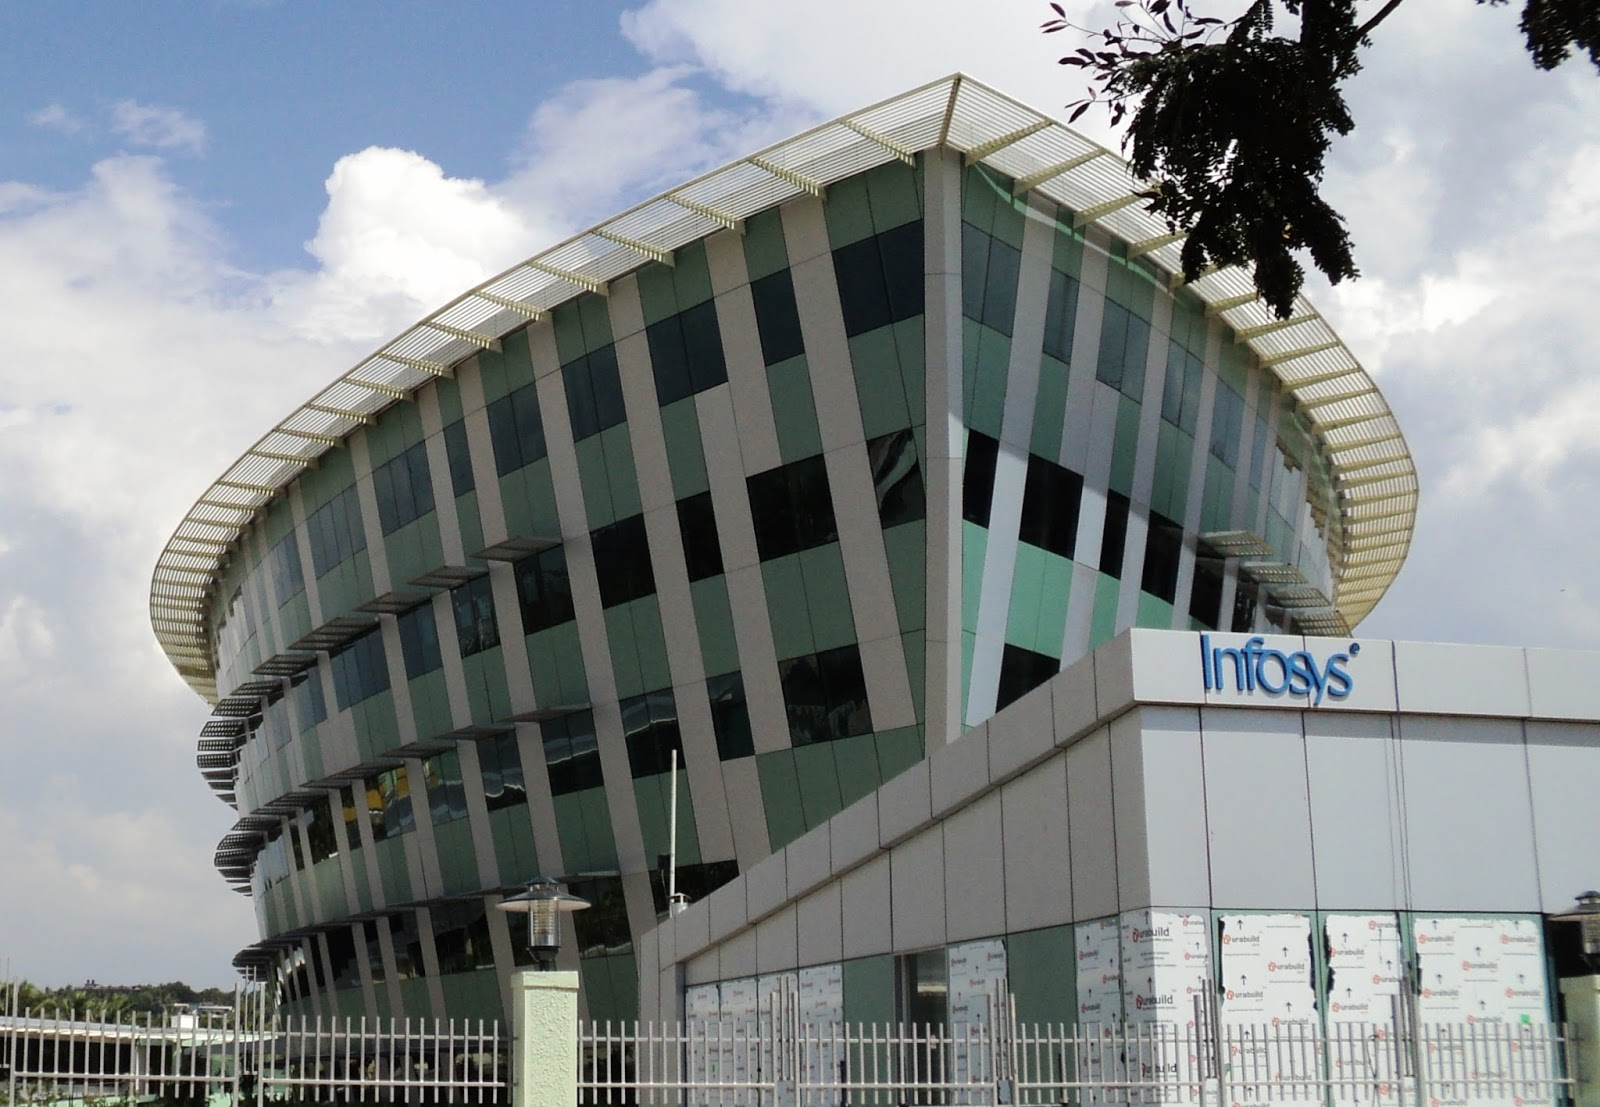 multiple locations for infosys career solutions pvt multiple locations for infosys career solutions pvt freshers experienced on 2015 apply this job